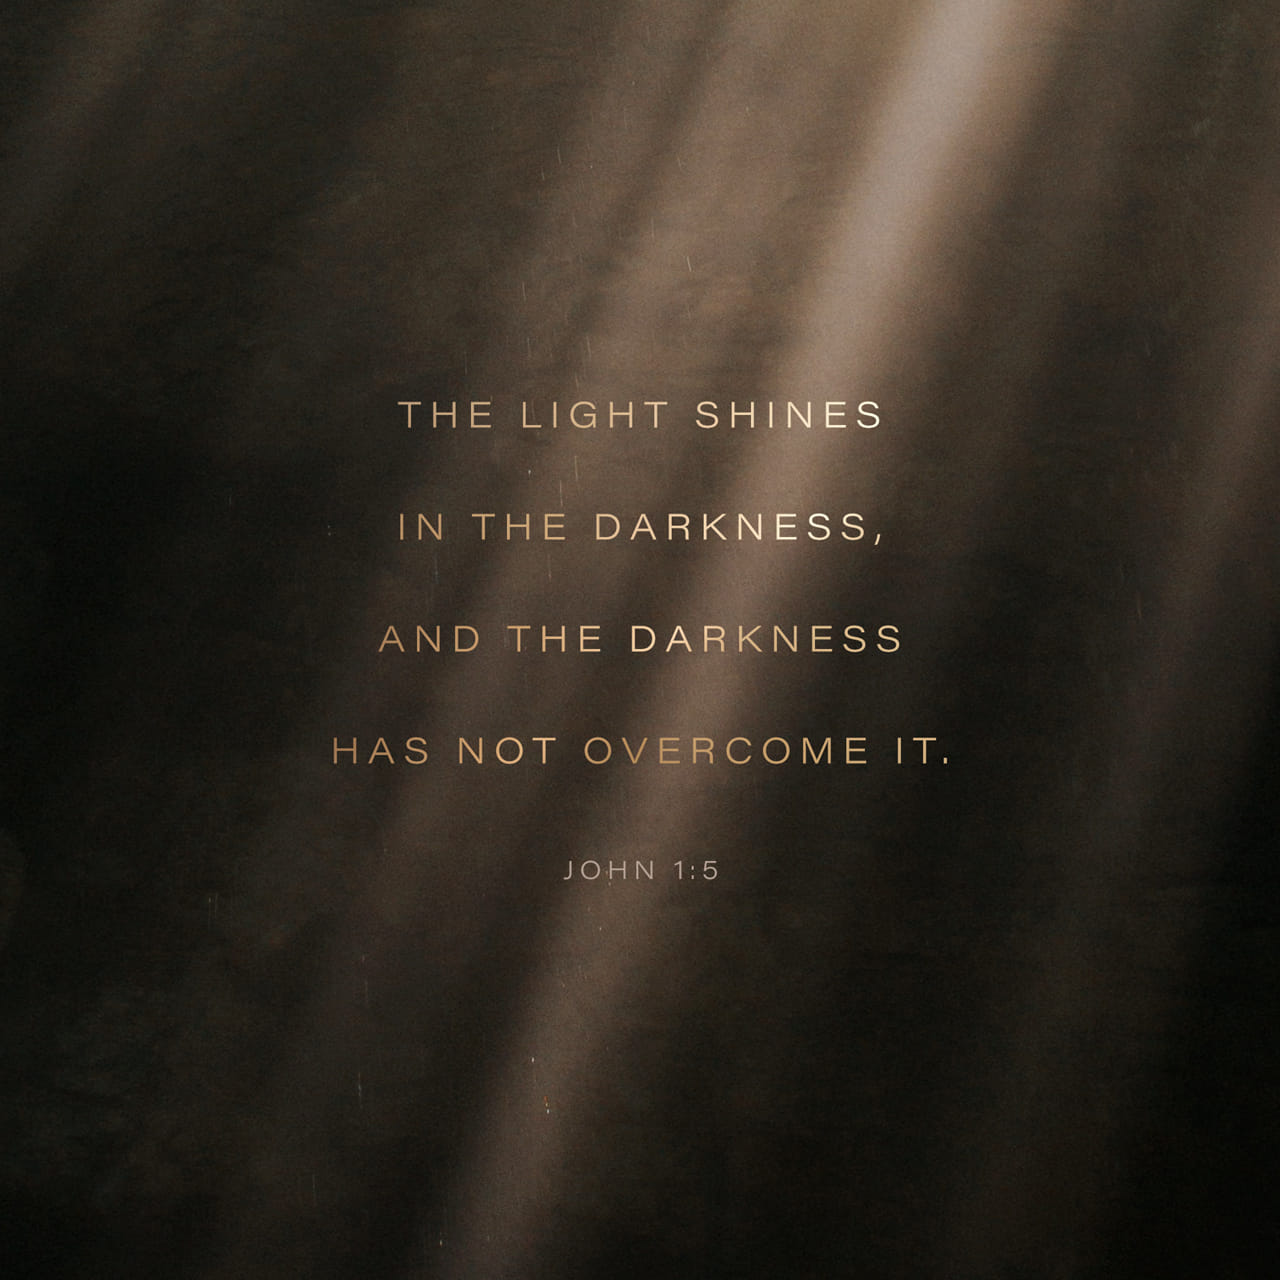 John 1:5 And the light shineth in darkness; and the darkness comprehended it not. | King James Version (KJV)